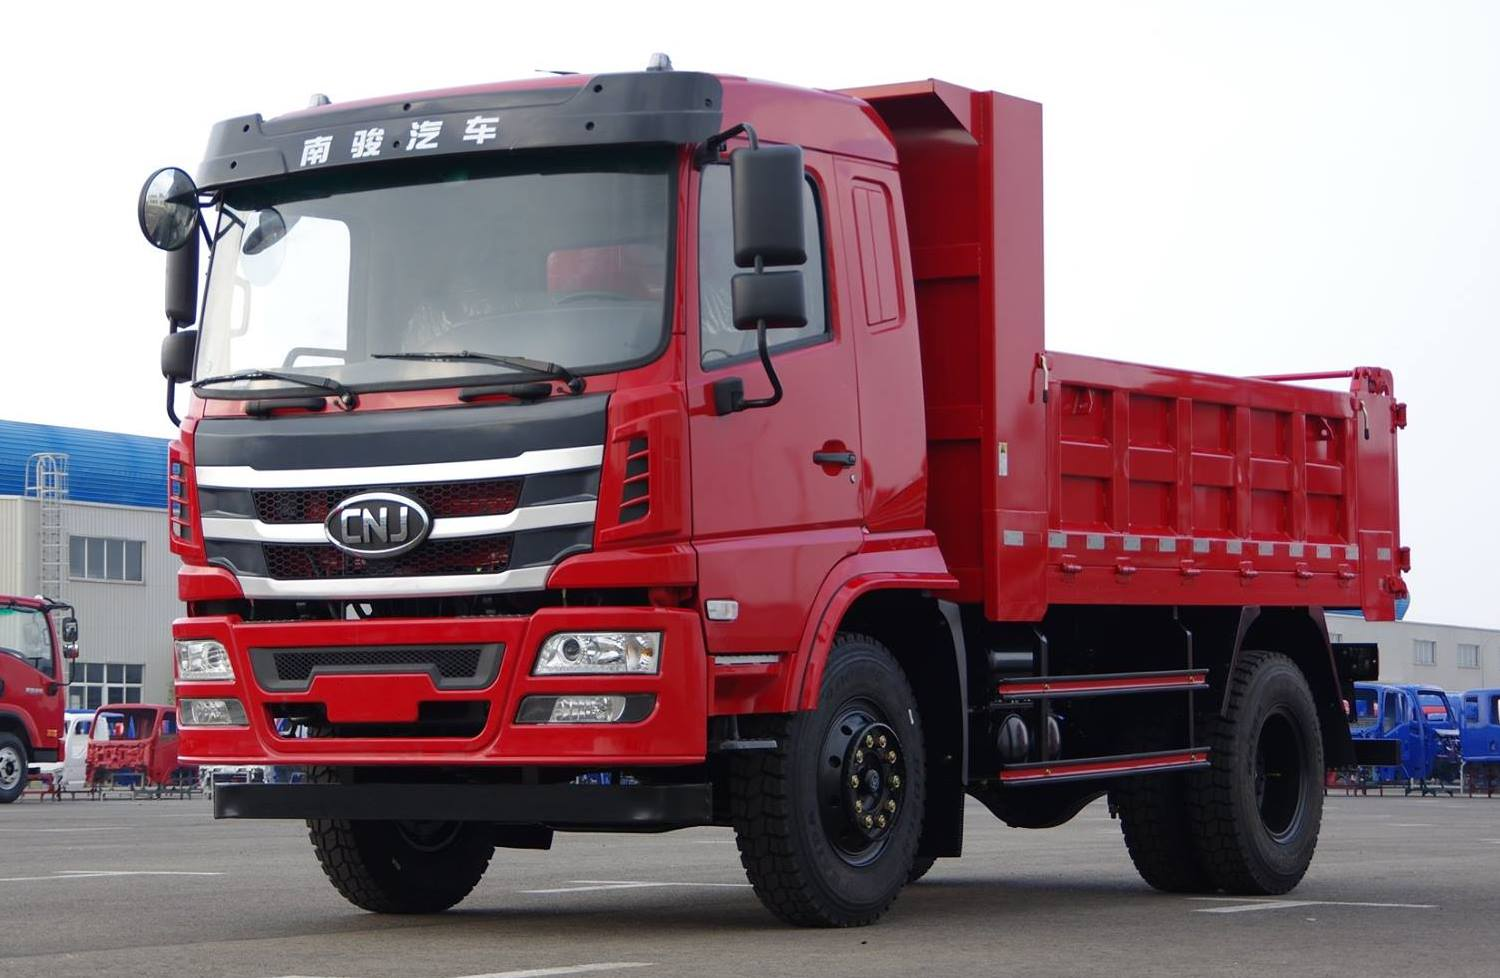 CNJ-Heavy-Trucks--K60-Series--from-20-tons-to-40-tons-1